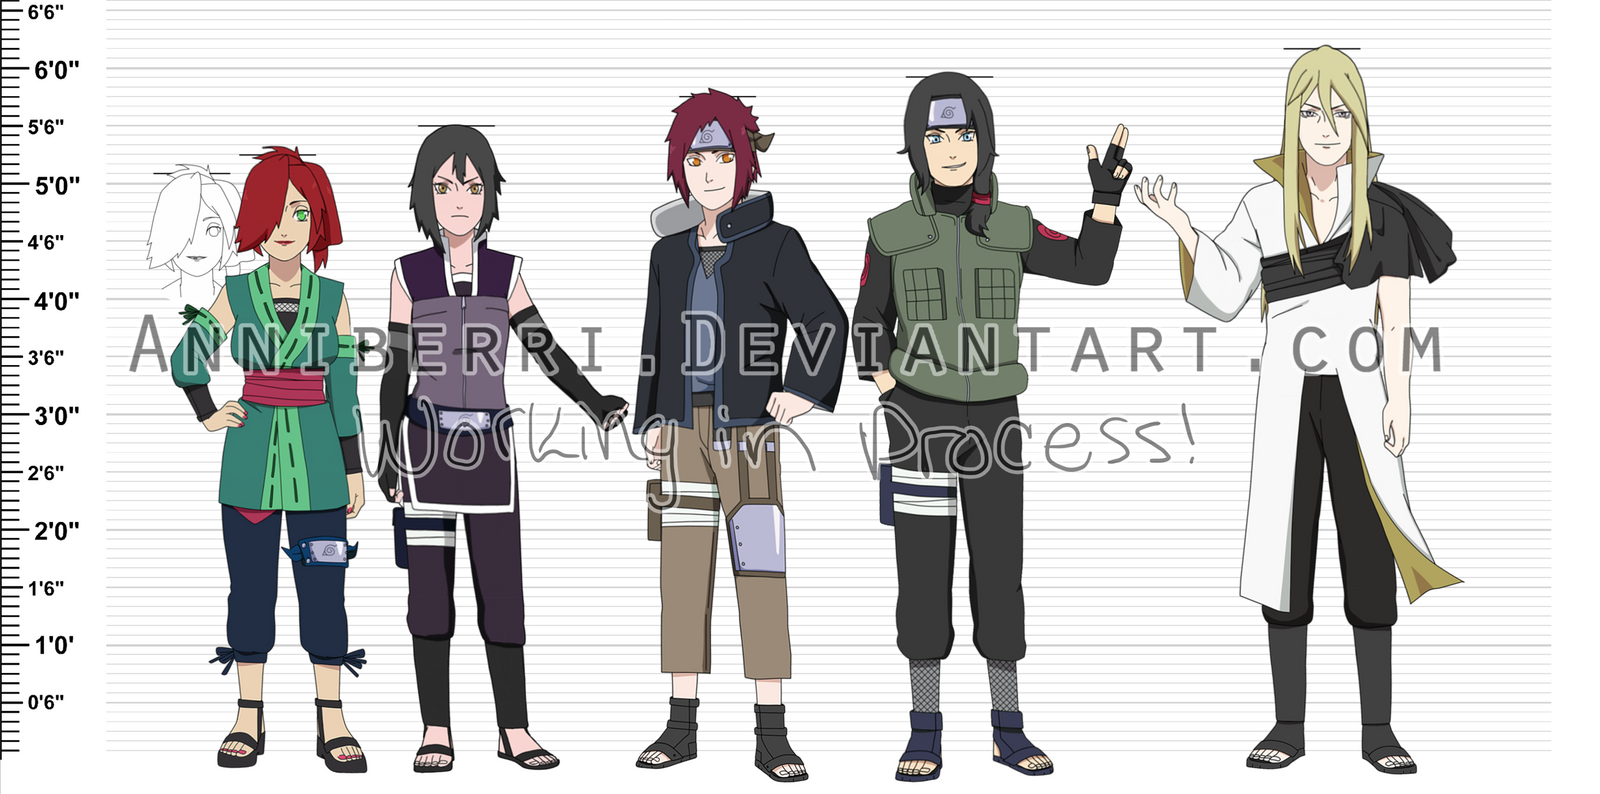 Anime Characters 175 Cm : Wip naruto oc height chart by anniberri on deviantart